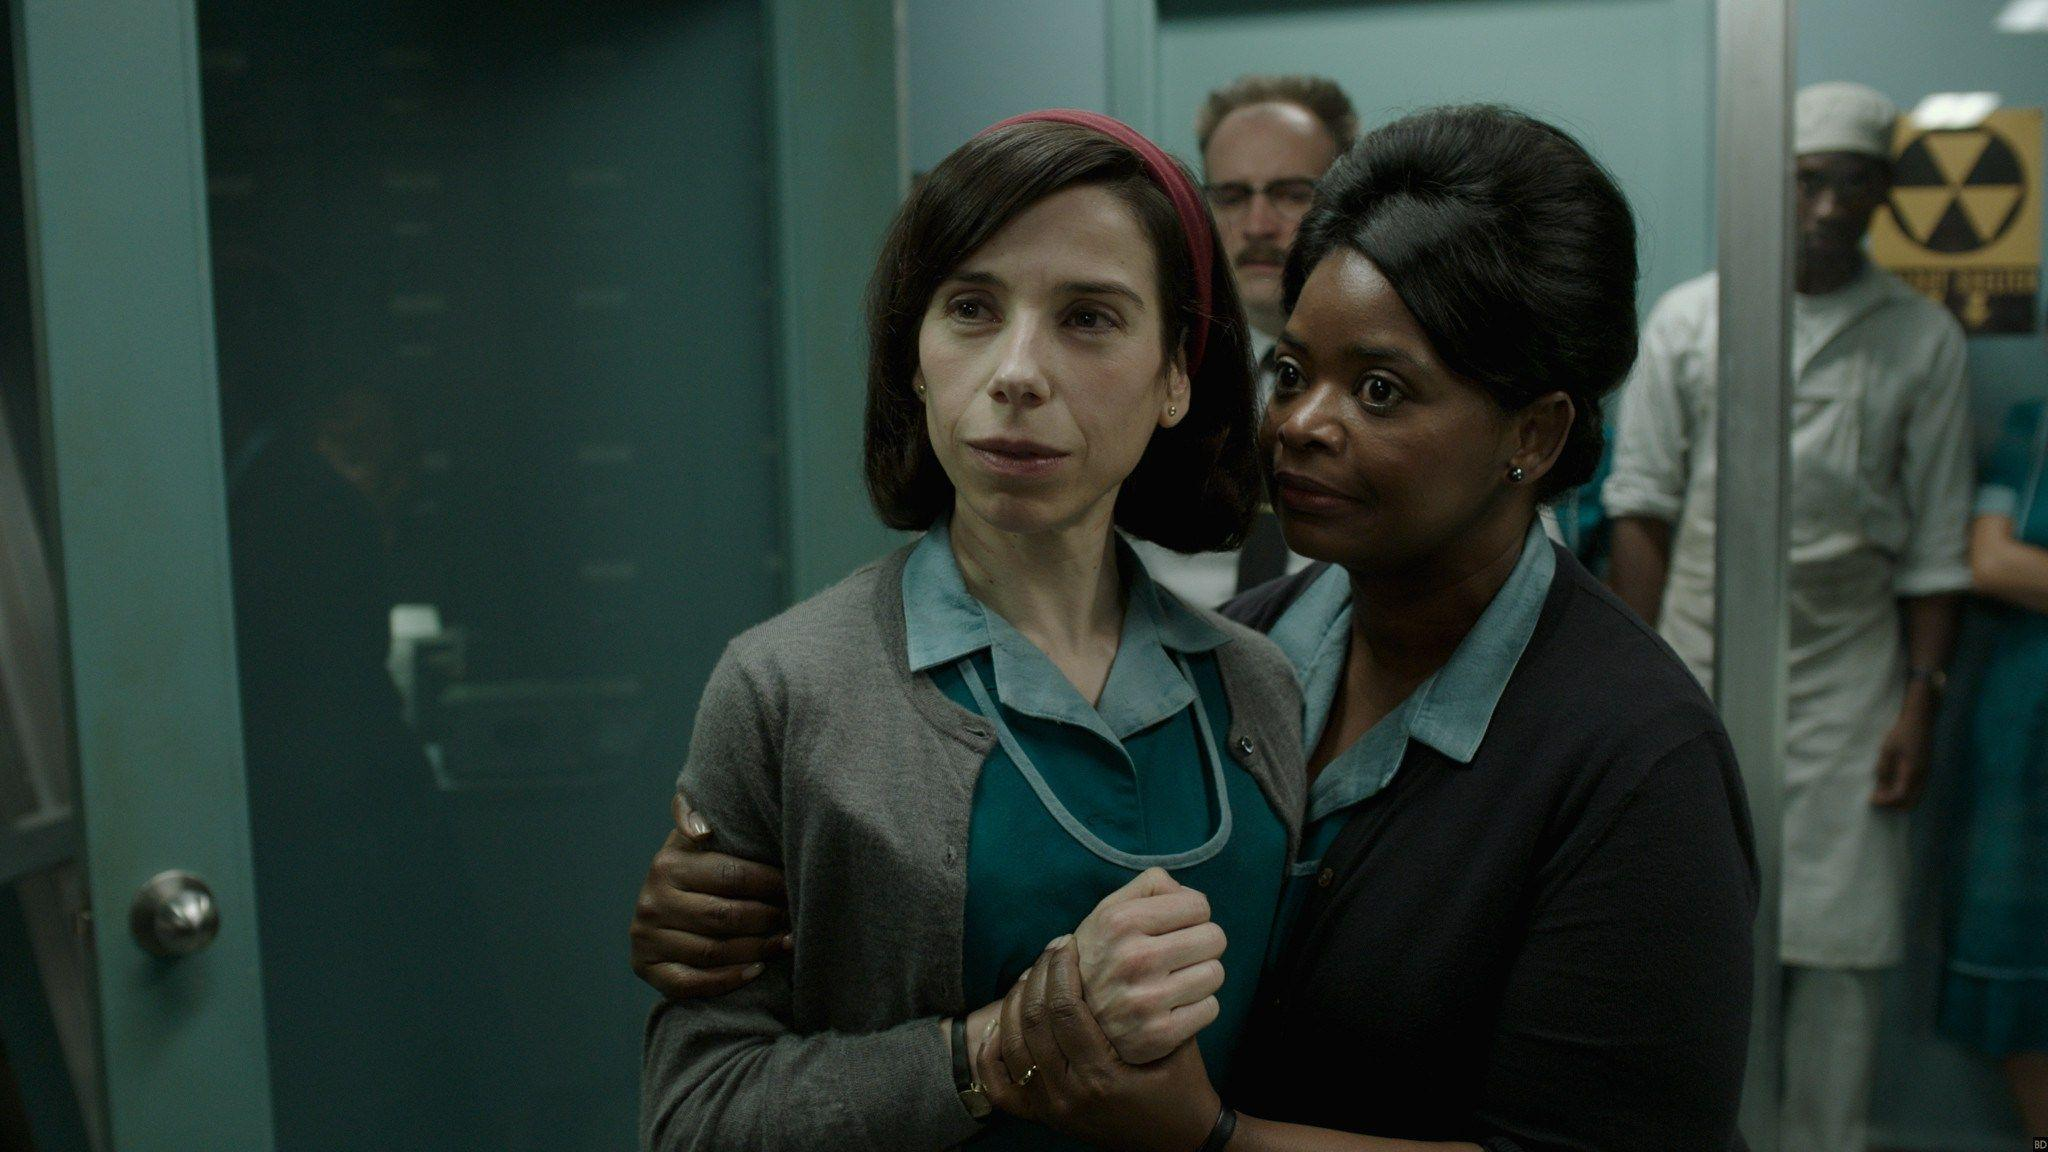 New Image from Guillermo del Toro's 'The Shape of Water'